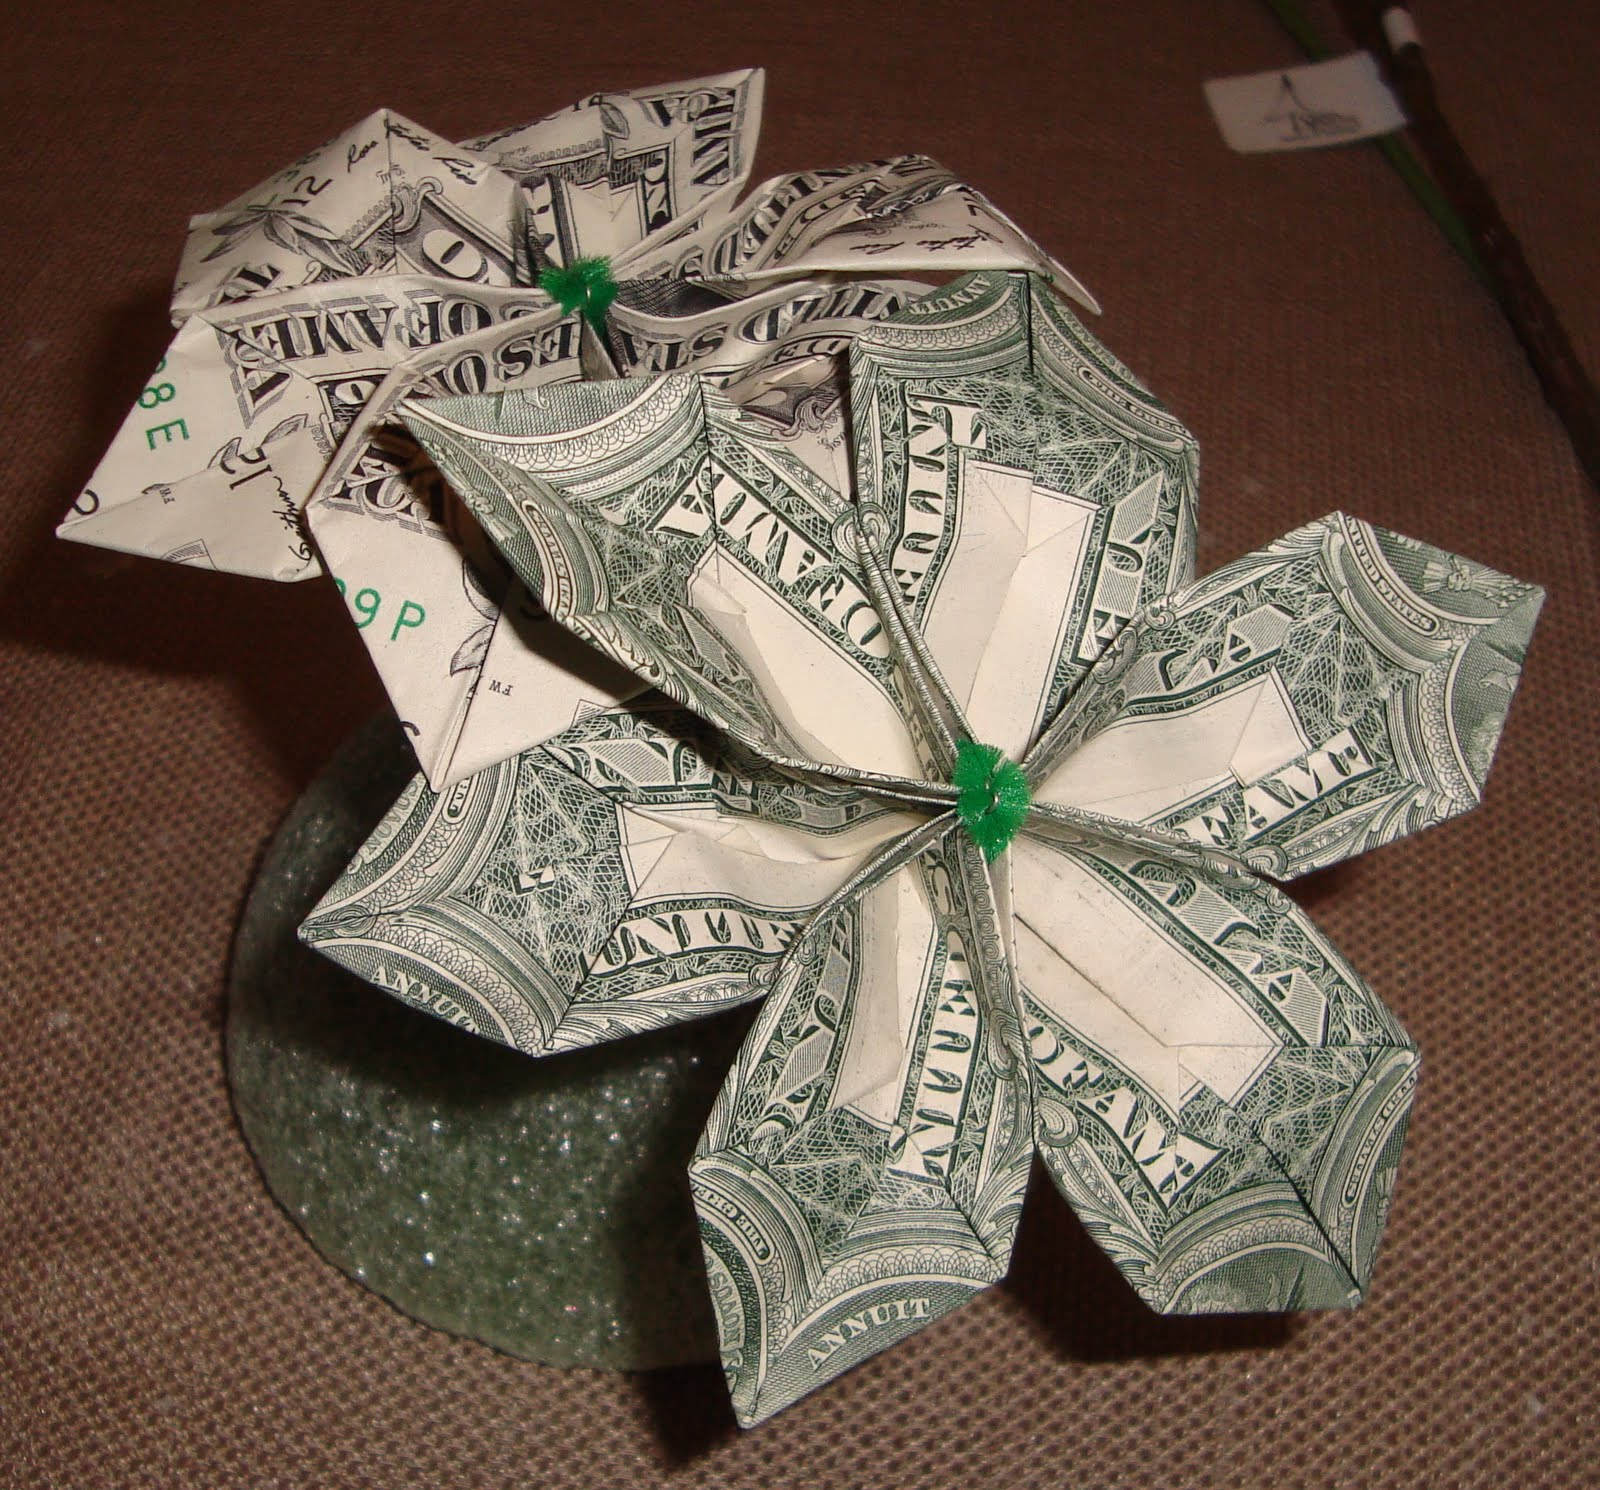 Origami flowers with money flowers healthy the goodlaff bride just tossing money away origami money flower mightylinksfo